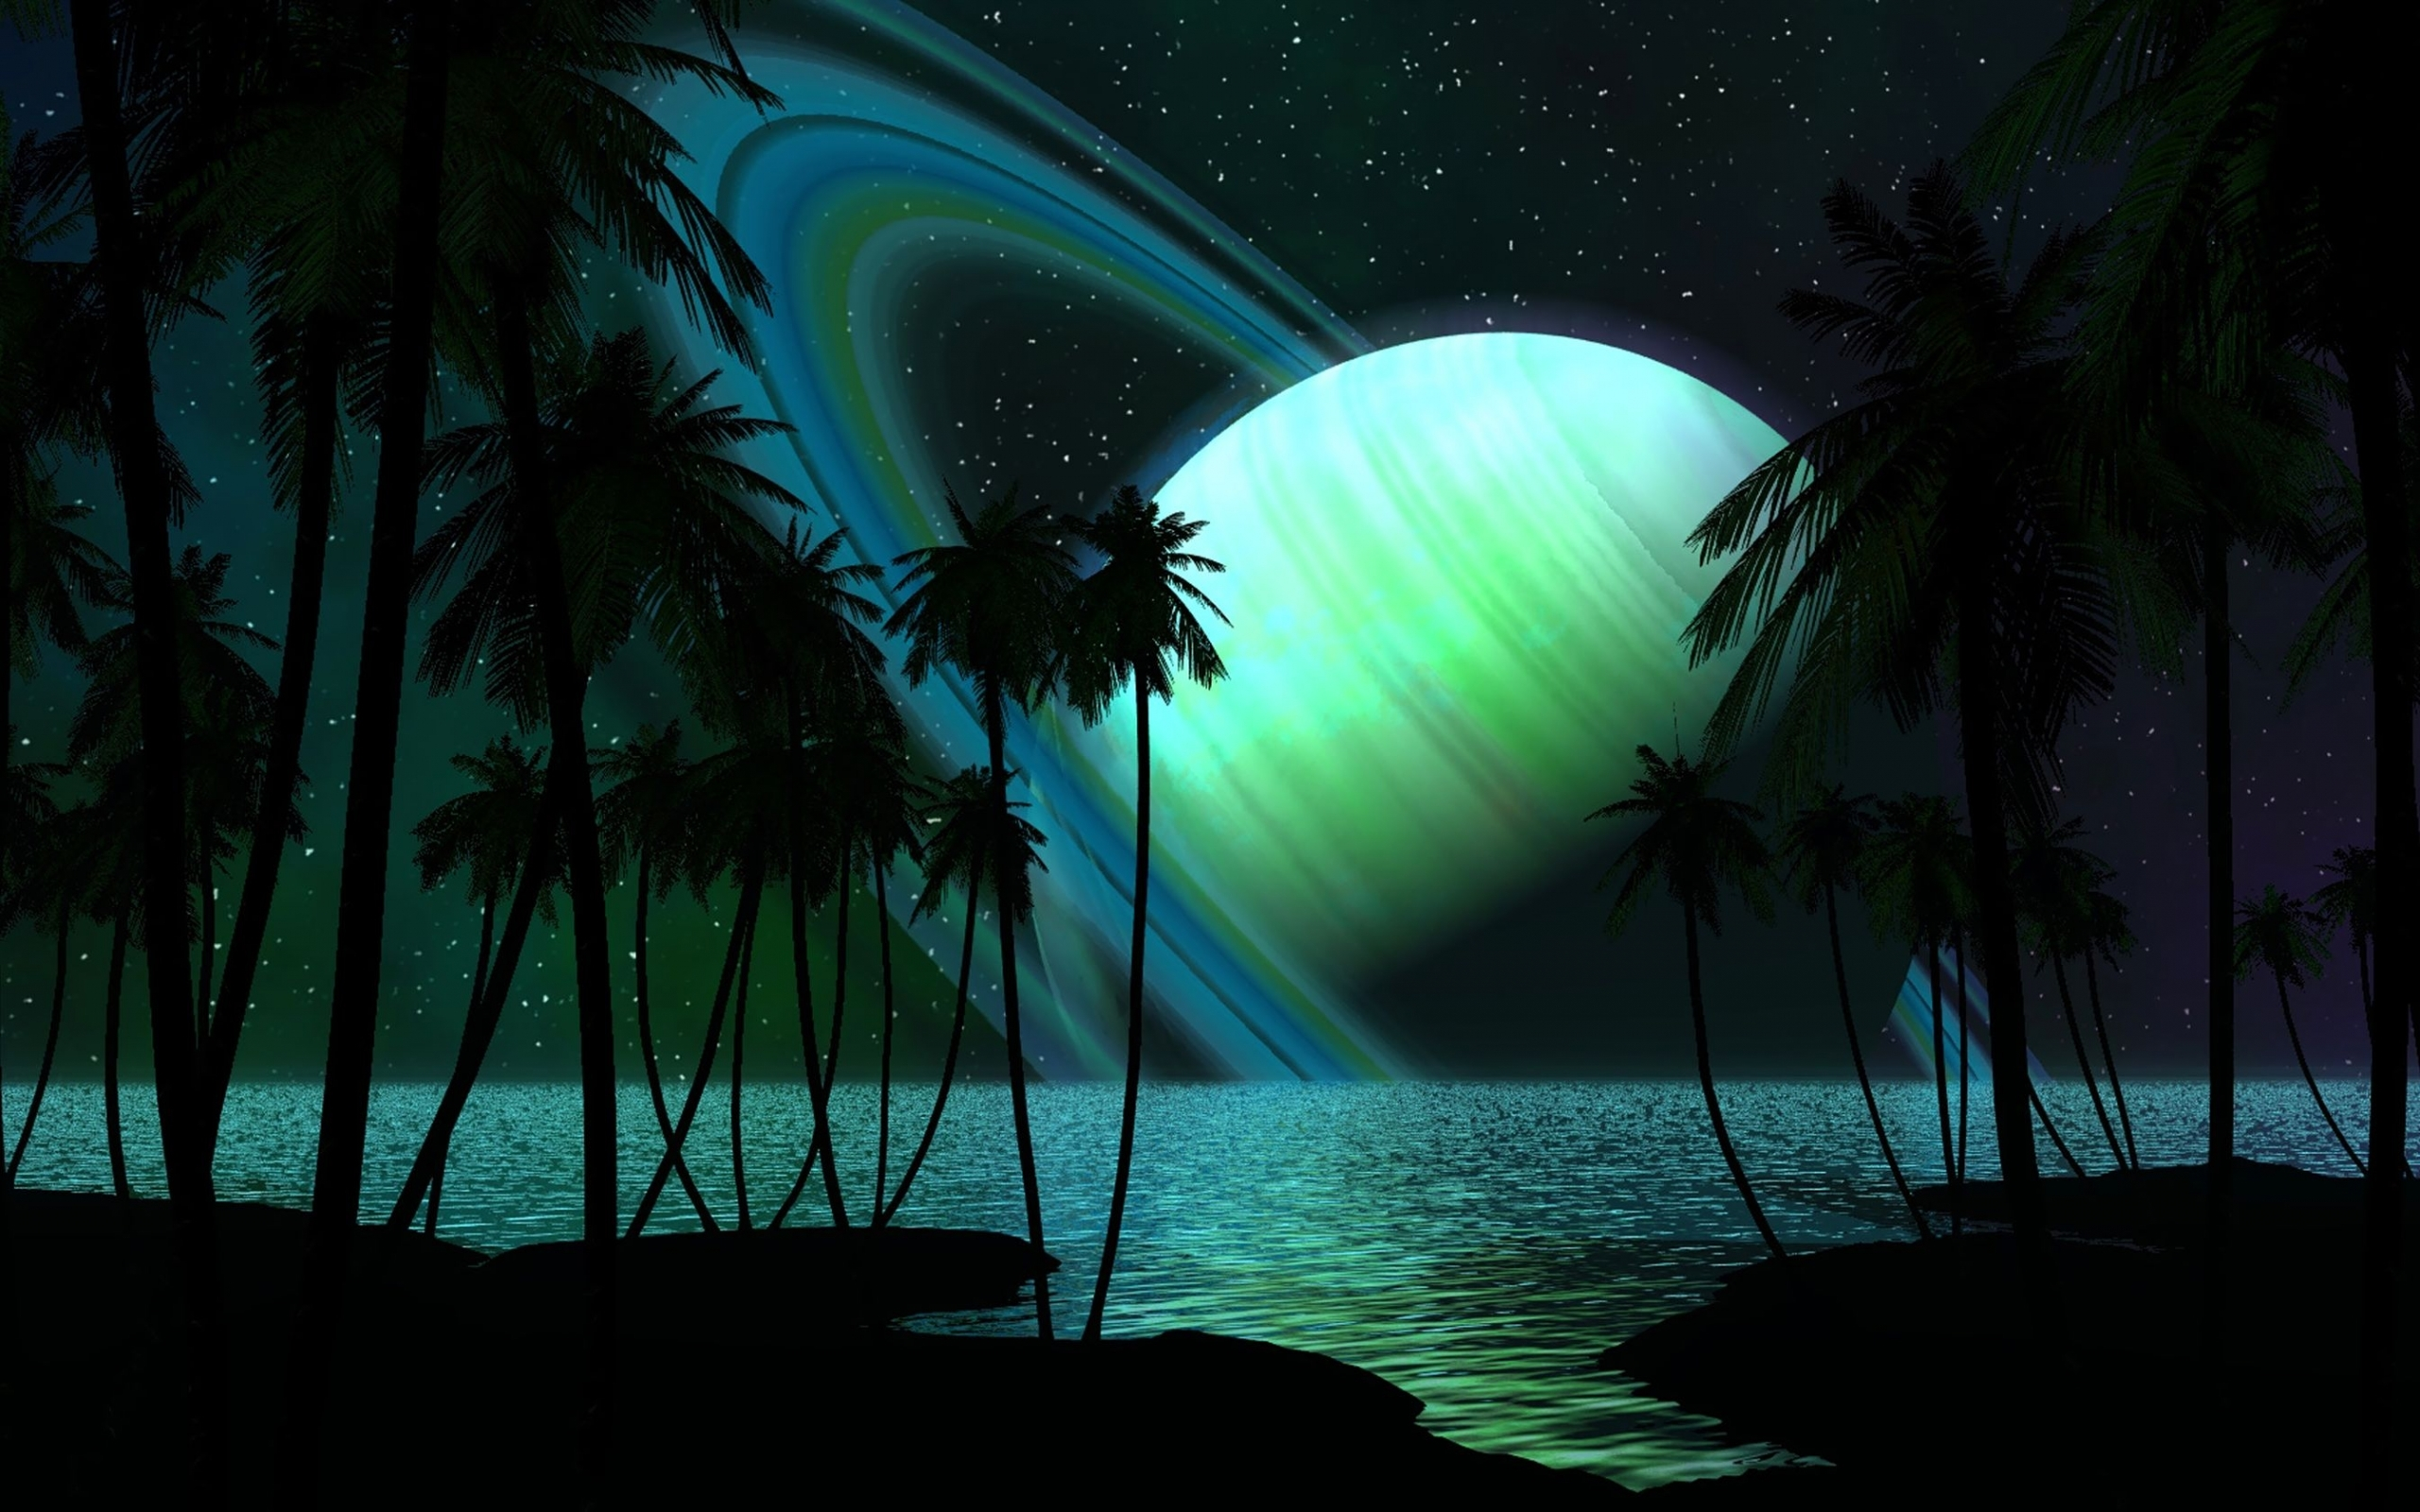 23249 download wallpaper Landscape, Fantasy, Sky, Planets, Sea, Night, Palms screensavers and pictures for free